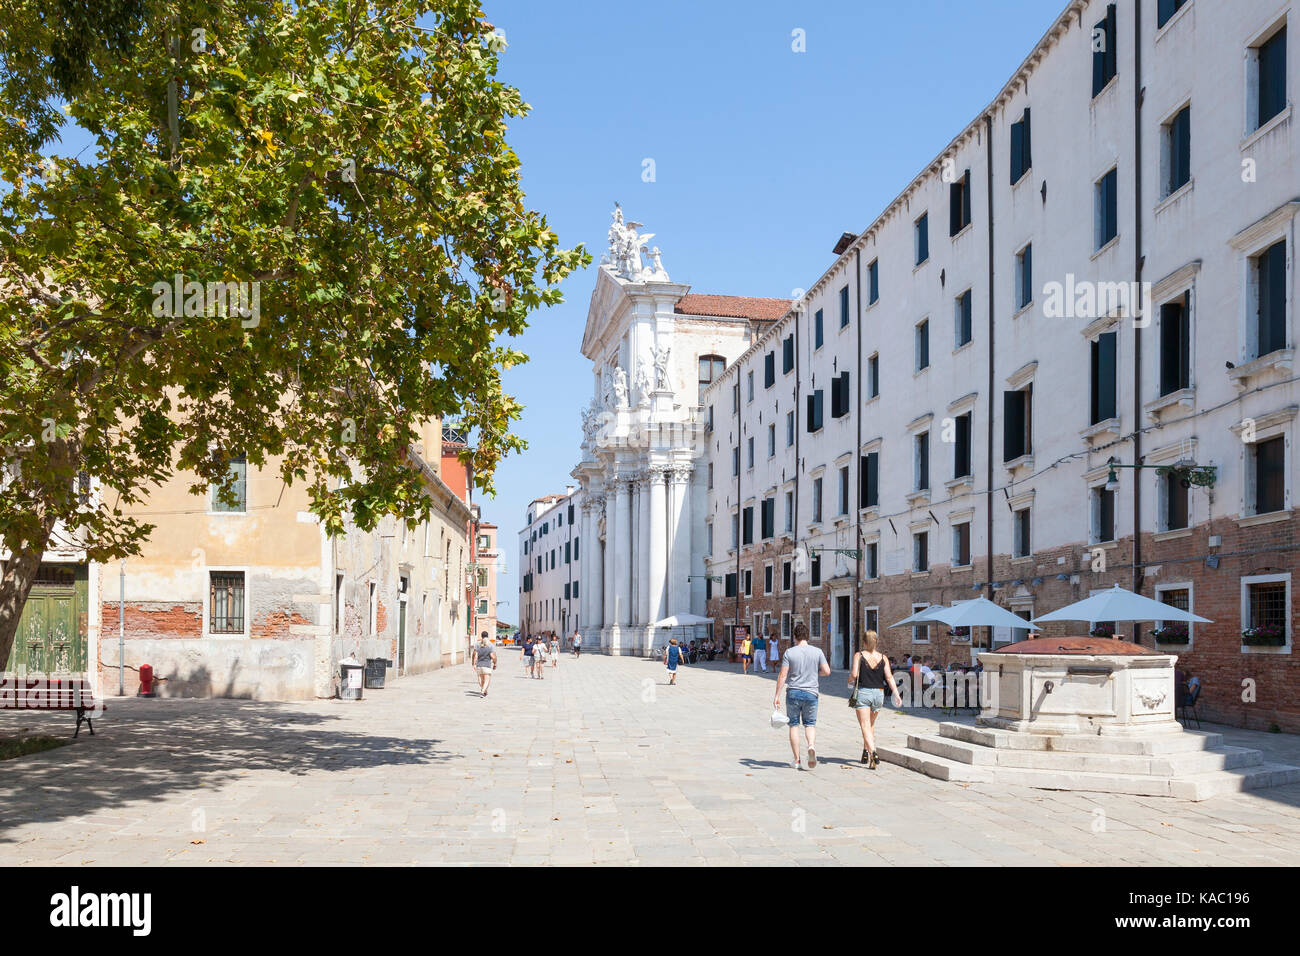 View of Campo dei Gesuiti, Cannaregio, Venice, Italy with  a few tourists walking towards the Gesuiti Church and - Stock Image